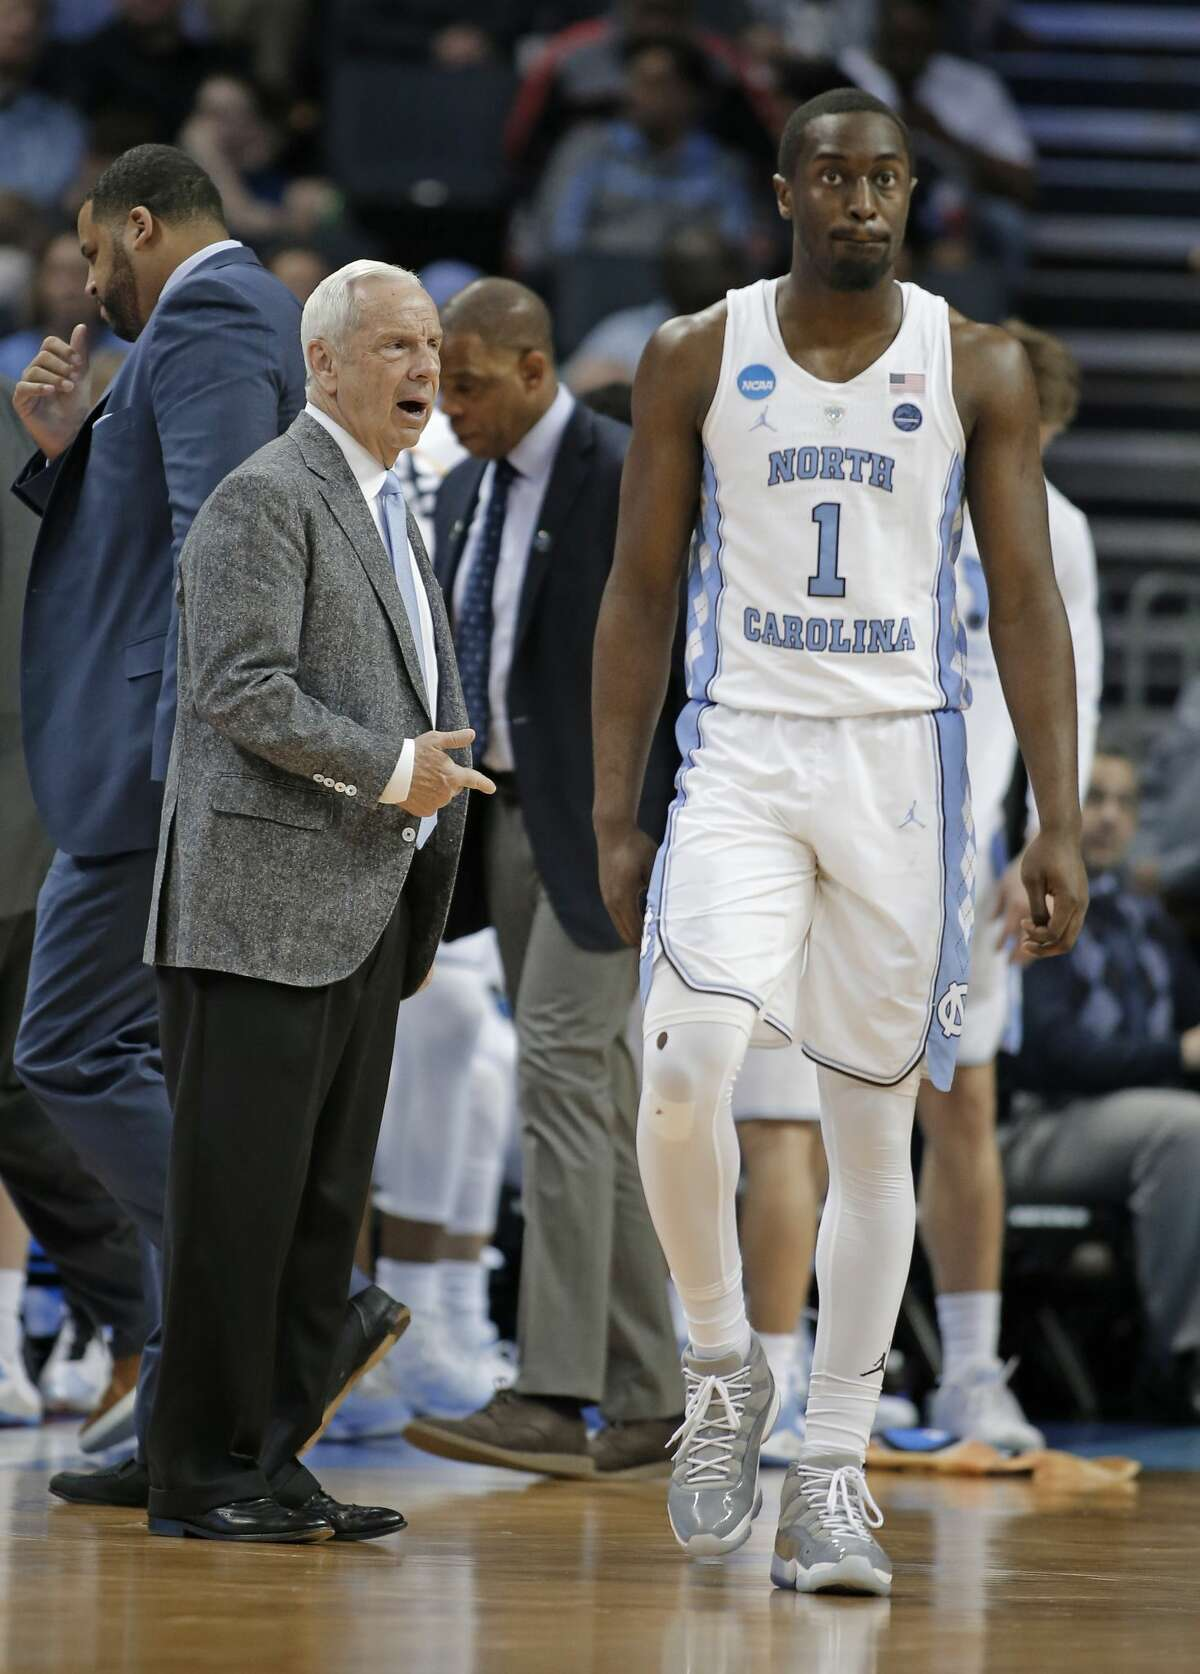 North Carolina's Theo Pinson (1) walks past head coach Roy Williams during the second half of a second-round game against Texas A&M in the NCAA men's college basketball tournament in Charlotte, N.C., Sunday, March 18, 2018. (AP Photo/Bob Leverone)